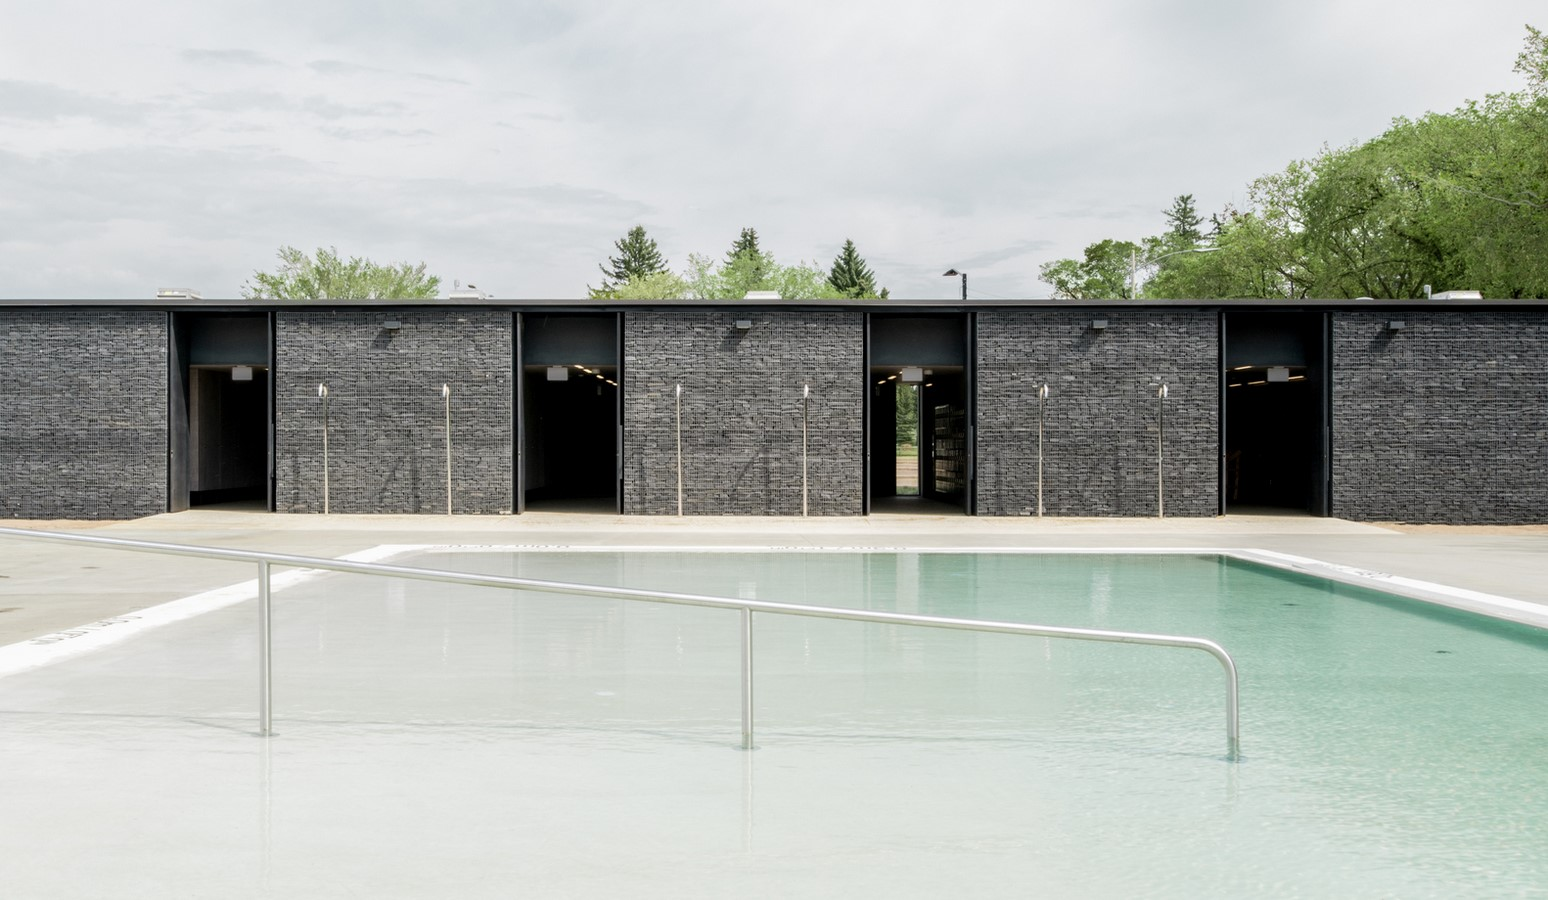 Borden Park Natural Swimming Pool, Canada, by gh3 - Sheet 1